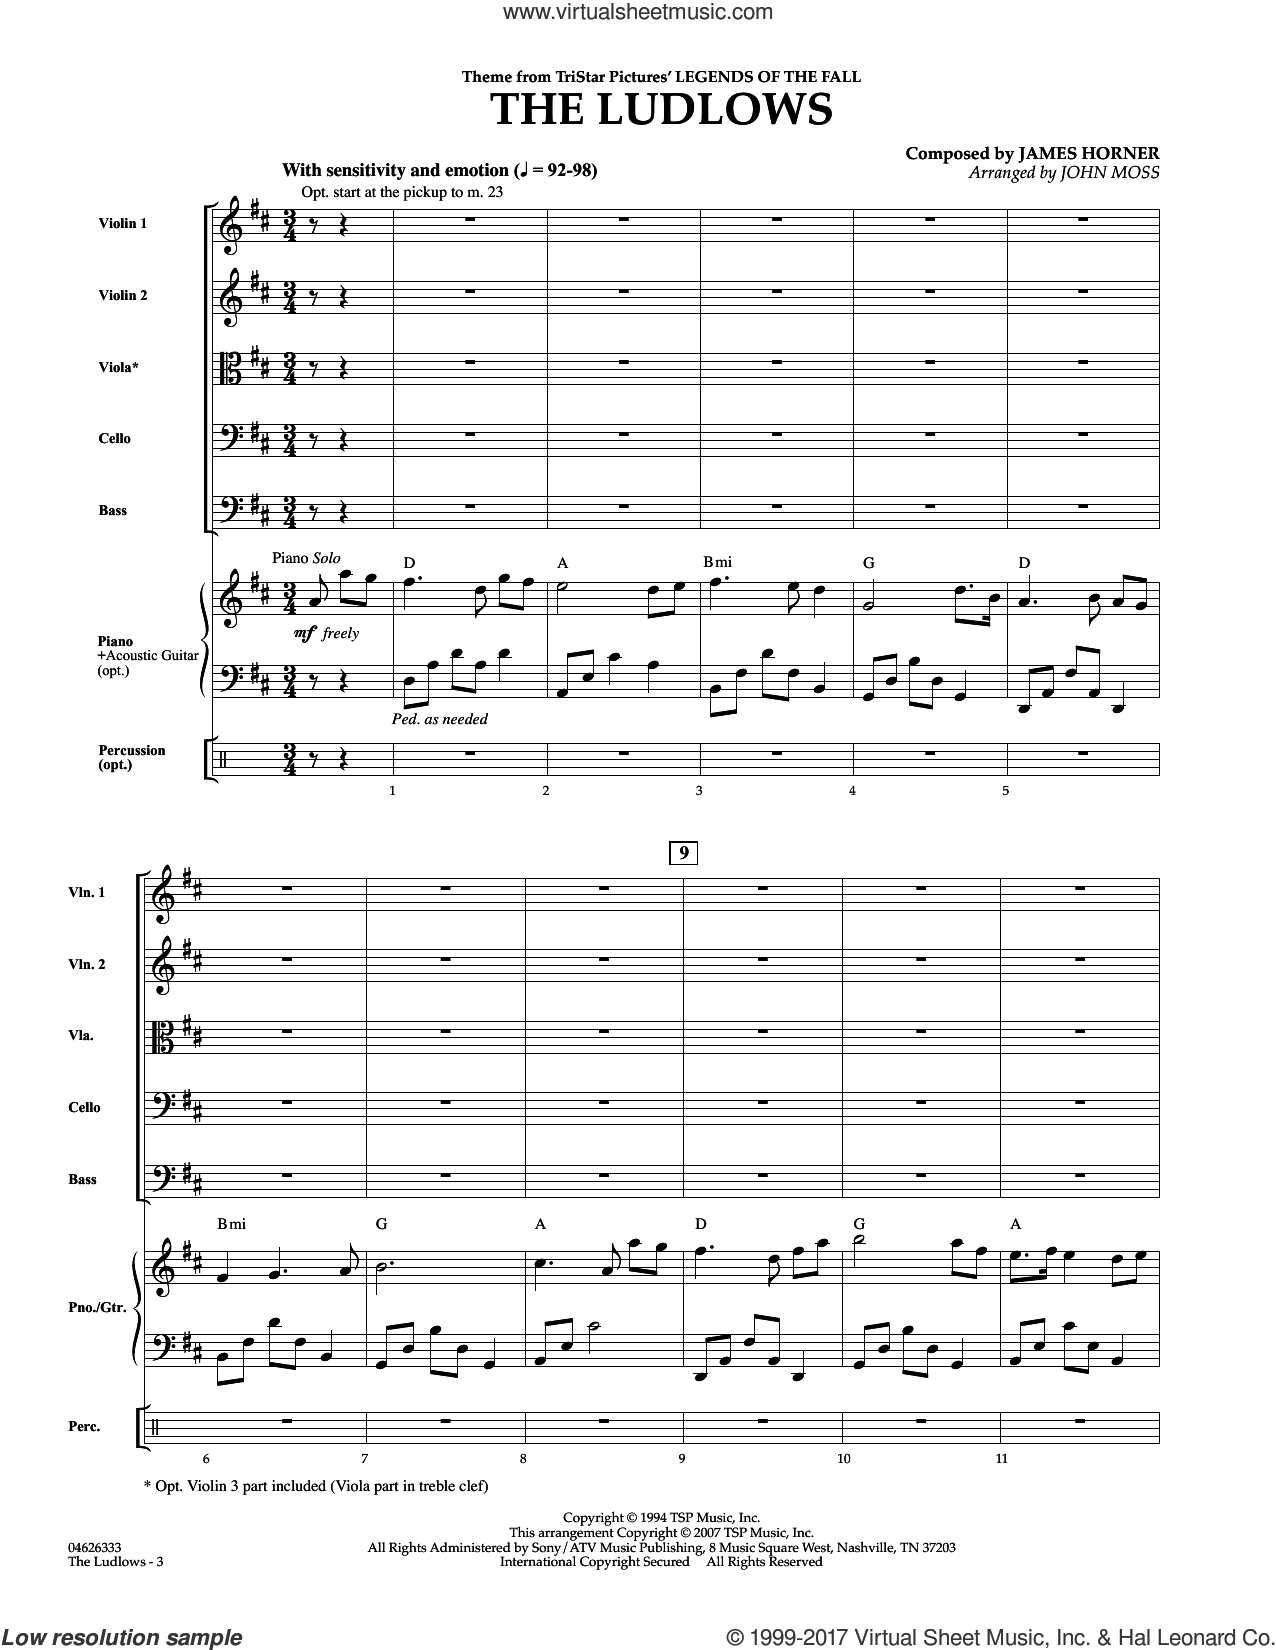 The Ludlows (Theme from Legends of the Fall) (COMPLETE) sheet music for orchestra by James Horner and John Moss, intermediate skill level